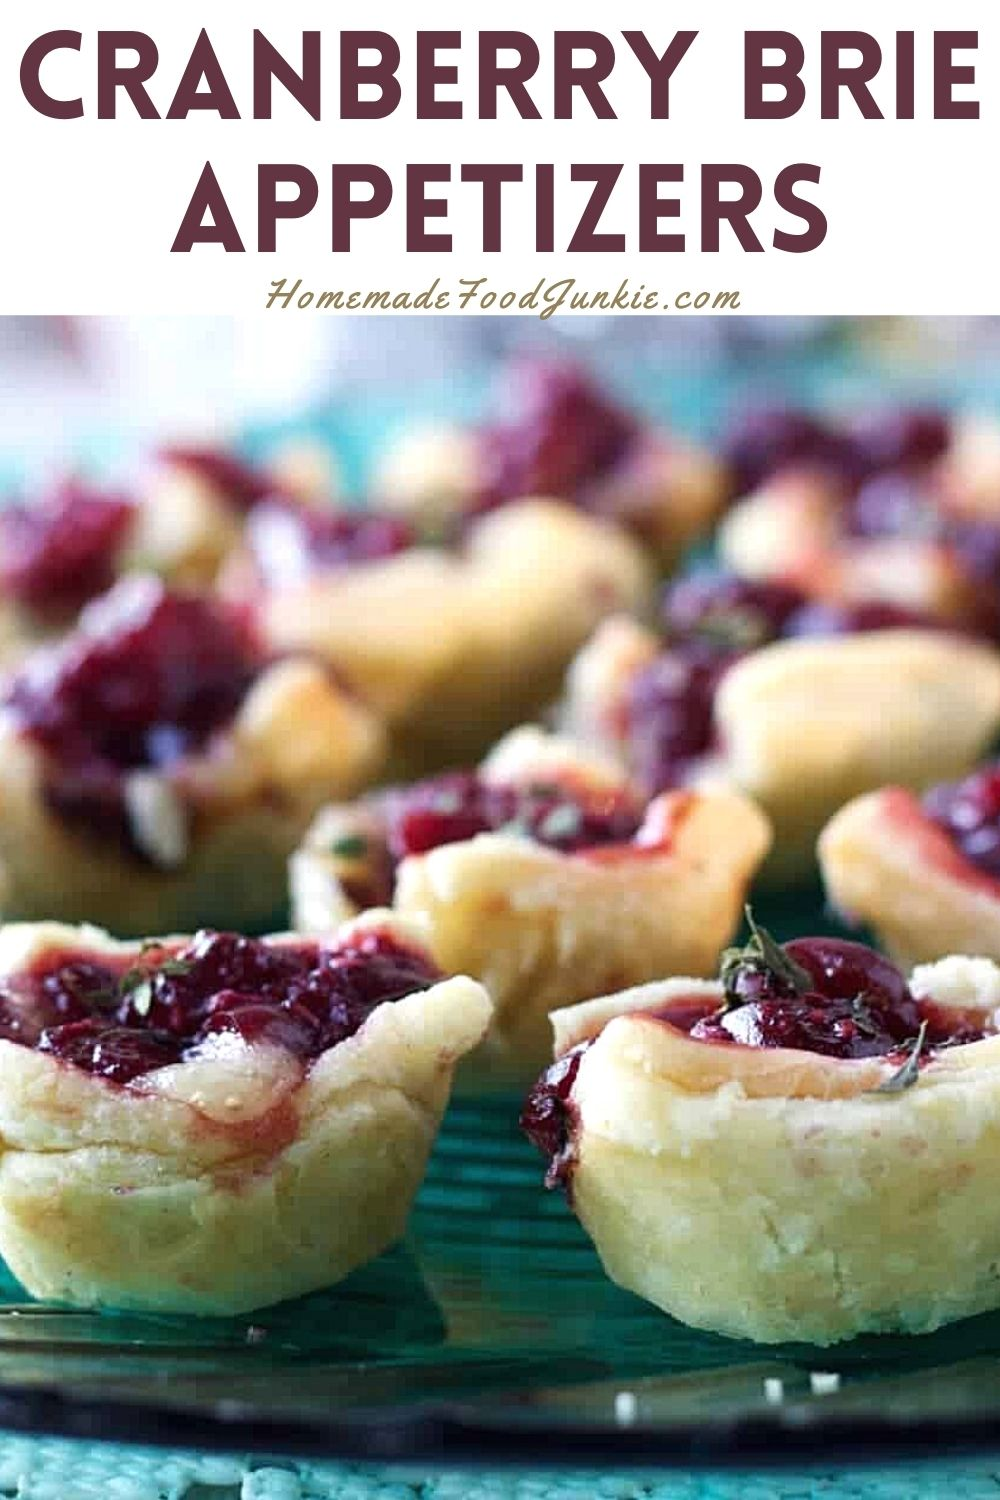 Cranberry brie appetizers-pin image